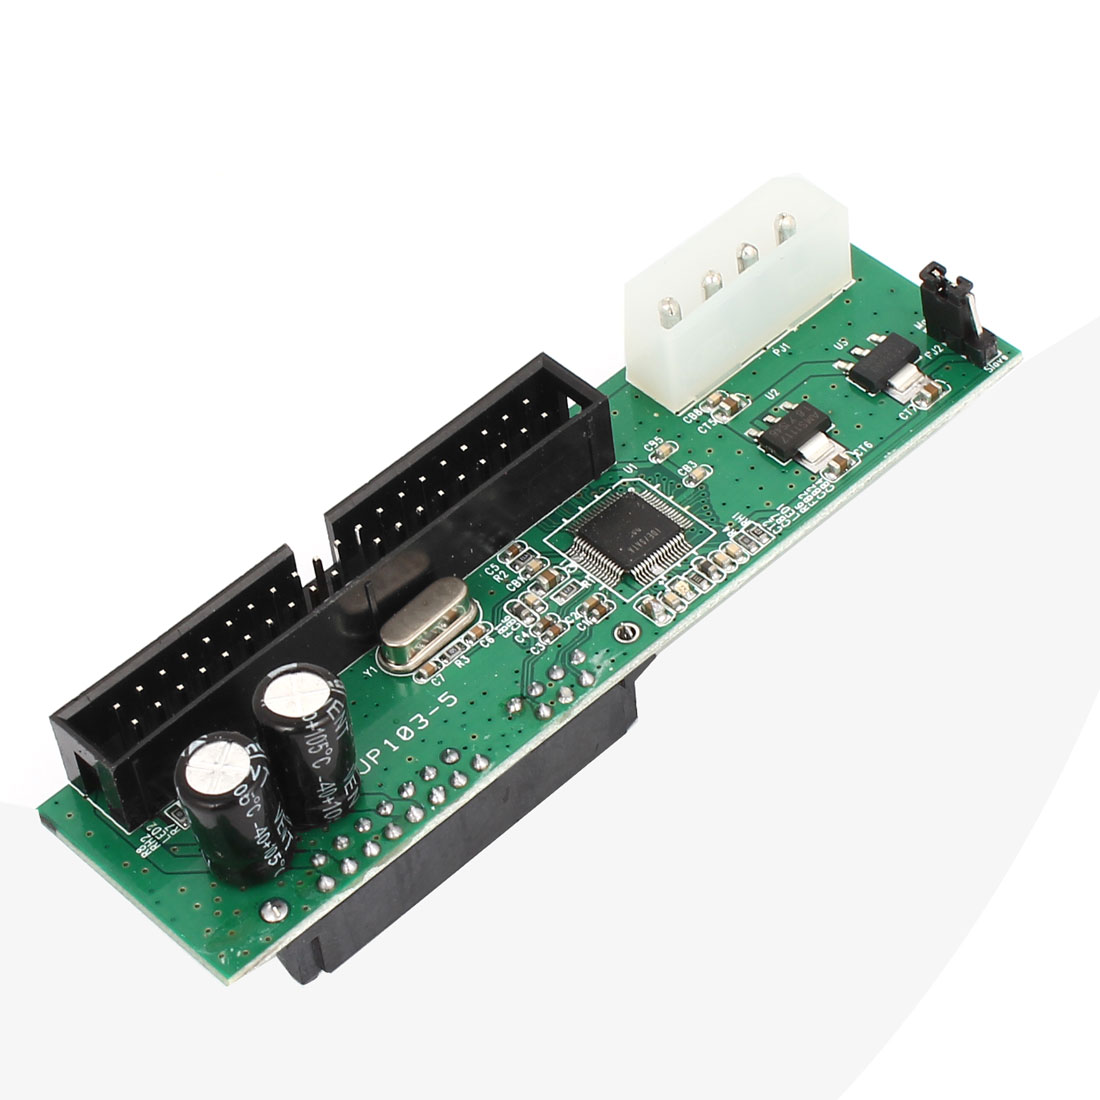 PATA/IDE 40 Pin Male to SATA 7+15 Pin Female Adapter Connector